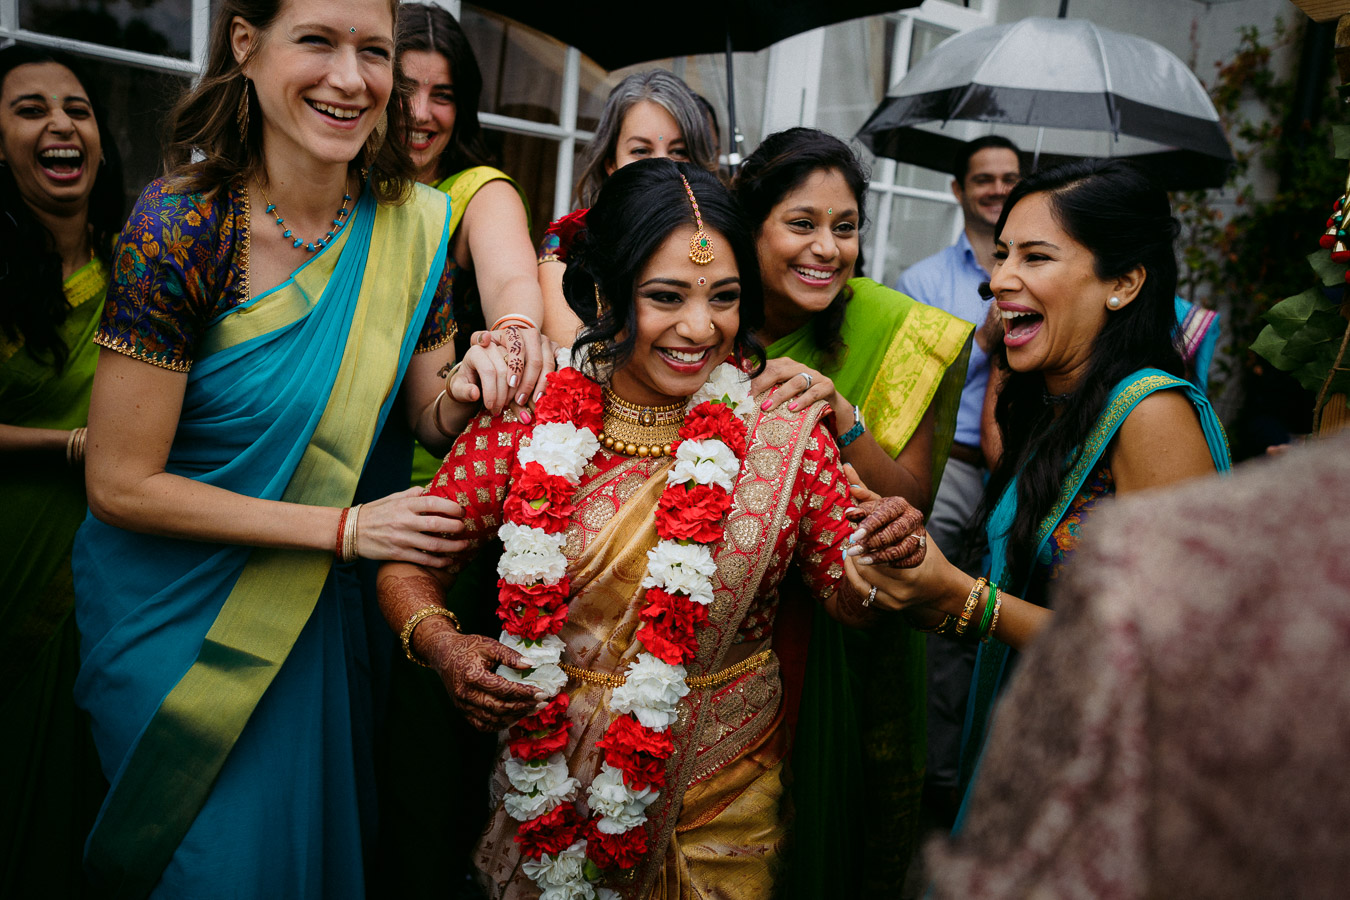 Indian wedding in Ireland